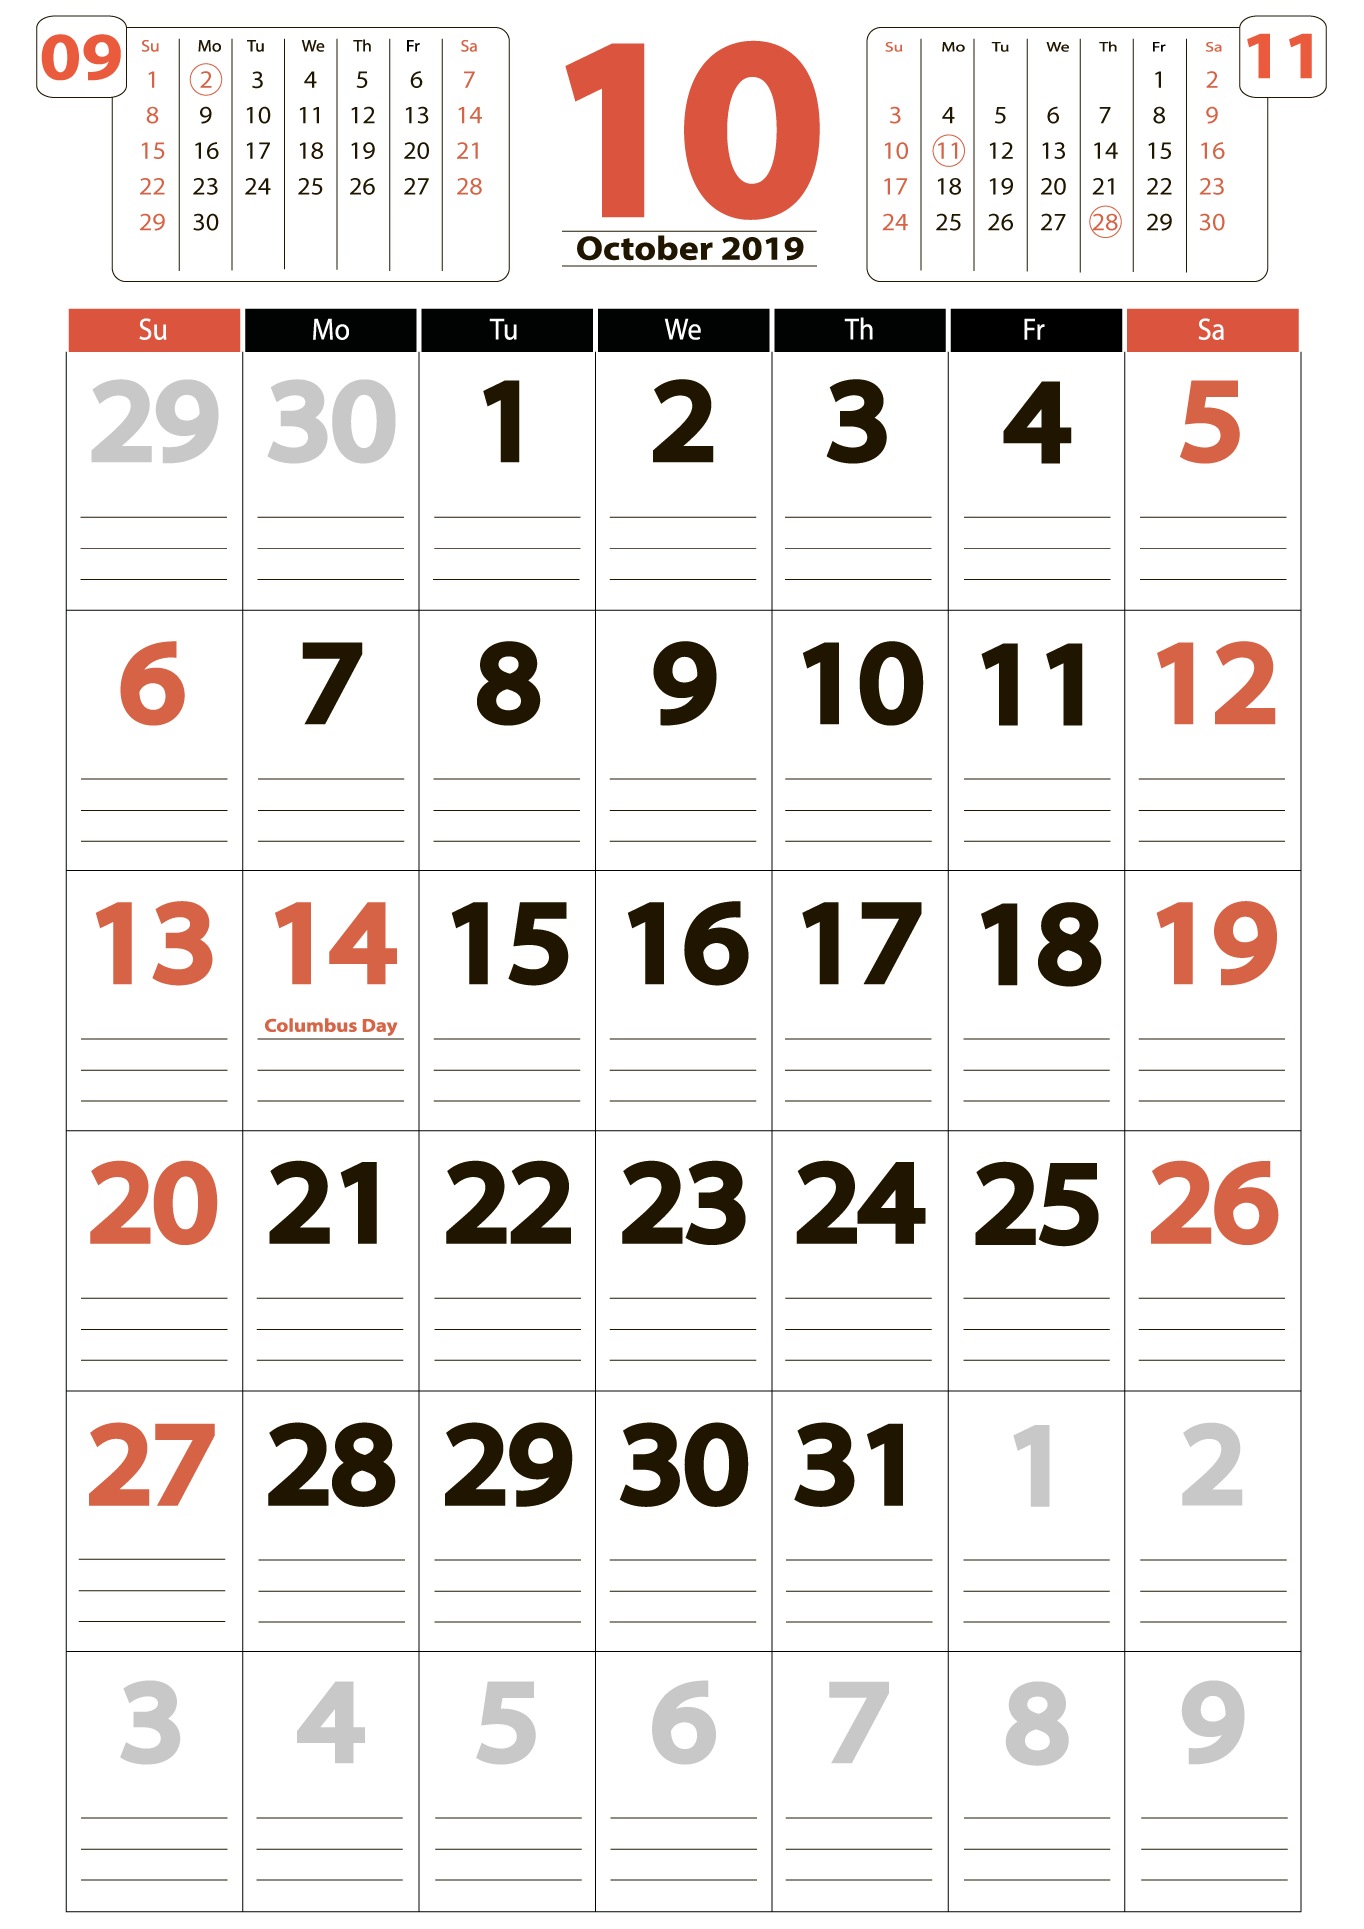 October 2019 Calendar with the US Holidays